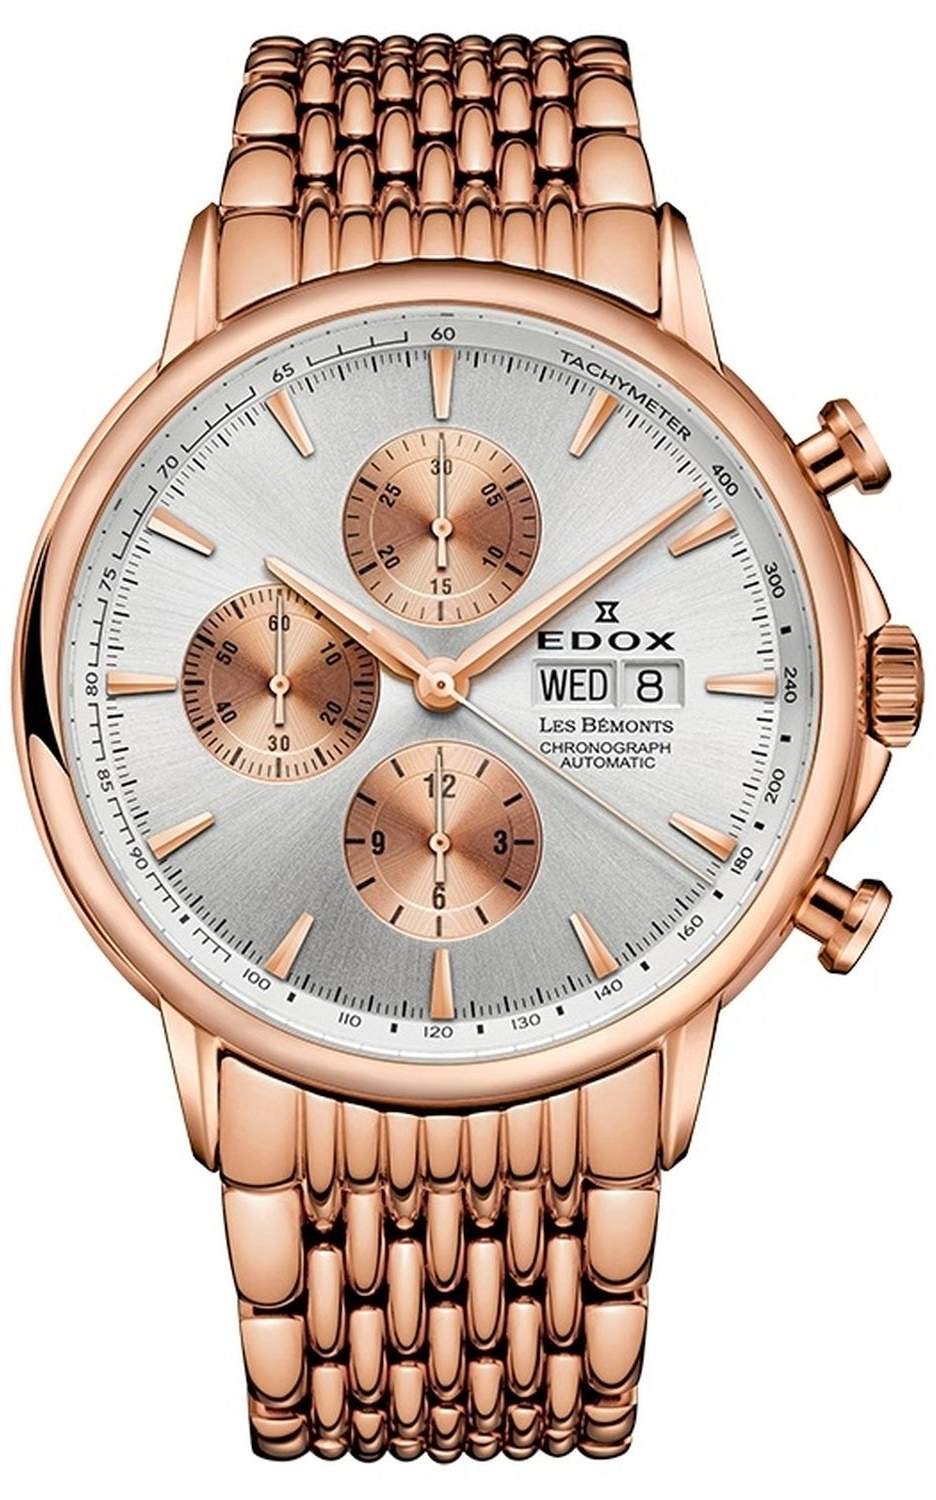 Edox Les Bemonts Chronograph Automatic  Silver Dial Size 42MM 01120 37RM AIR